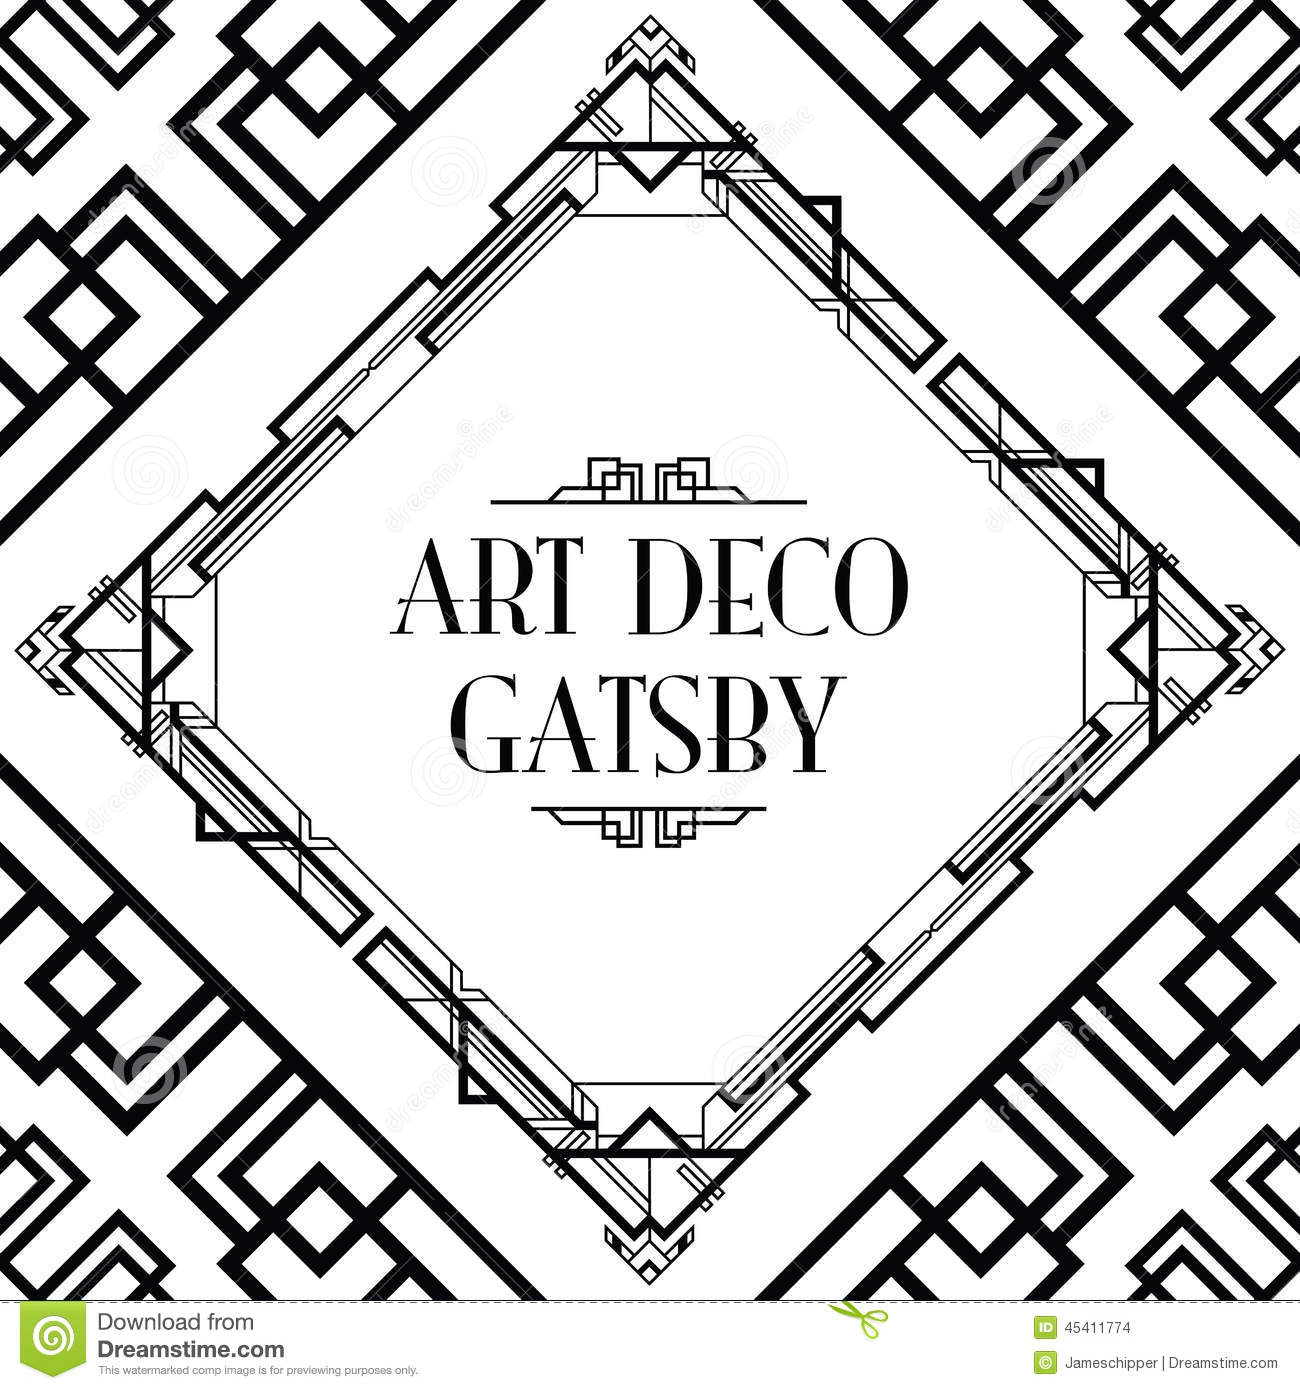 Art deco gatsby style stock vector. Image of frame, line